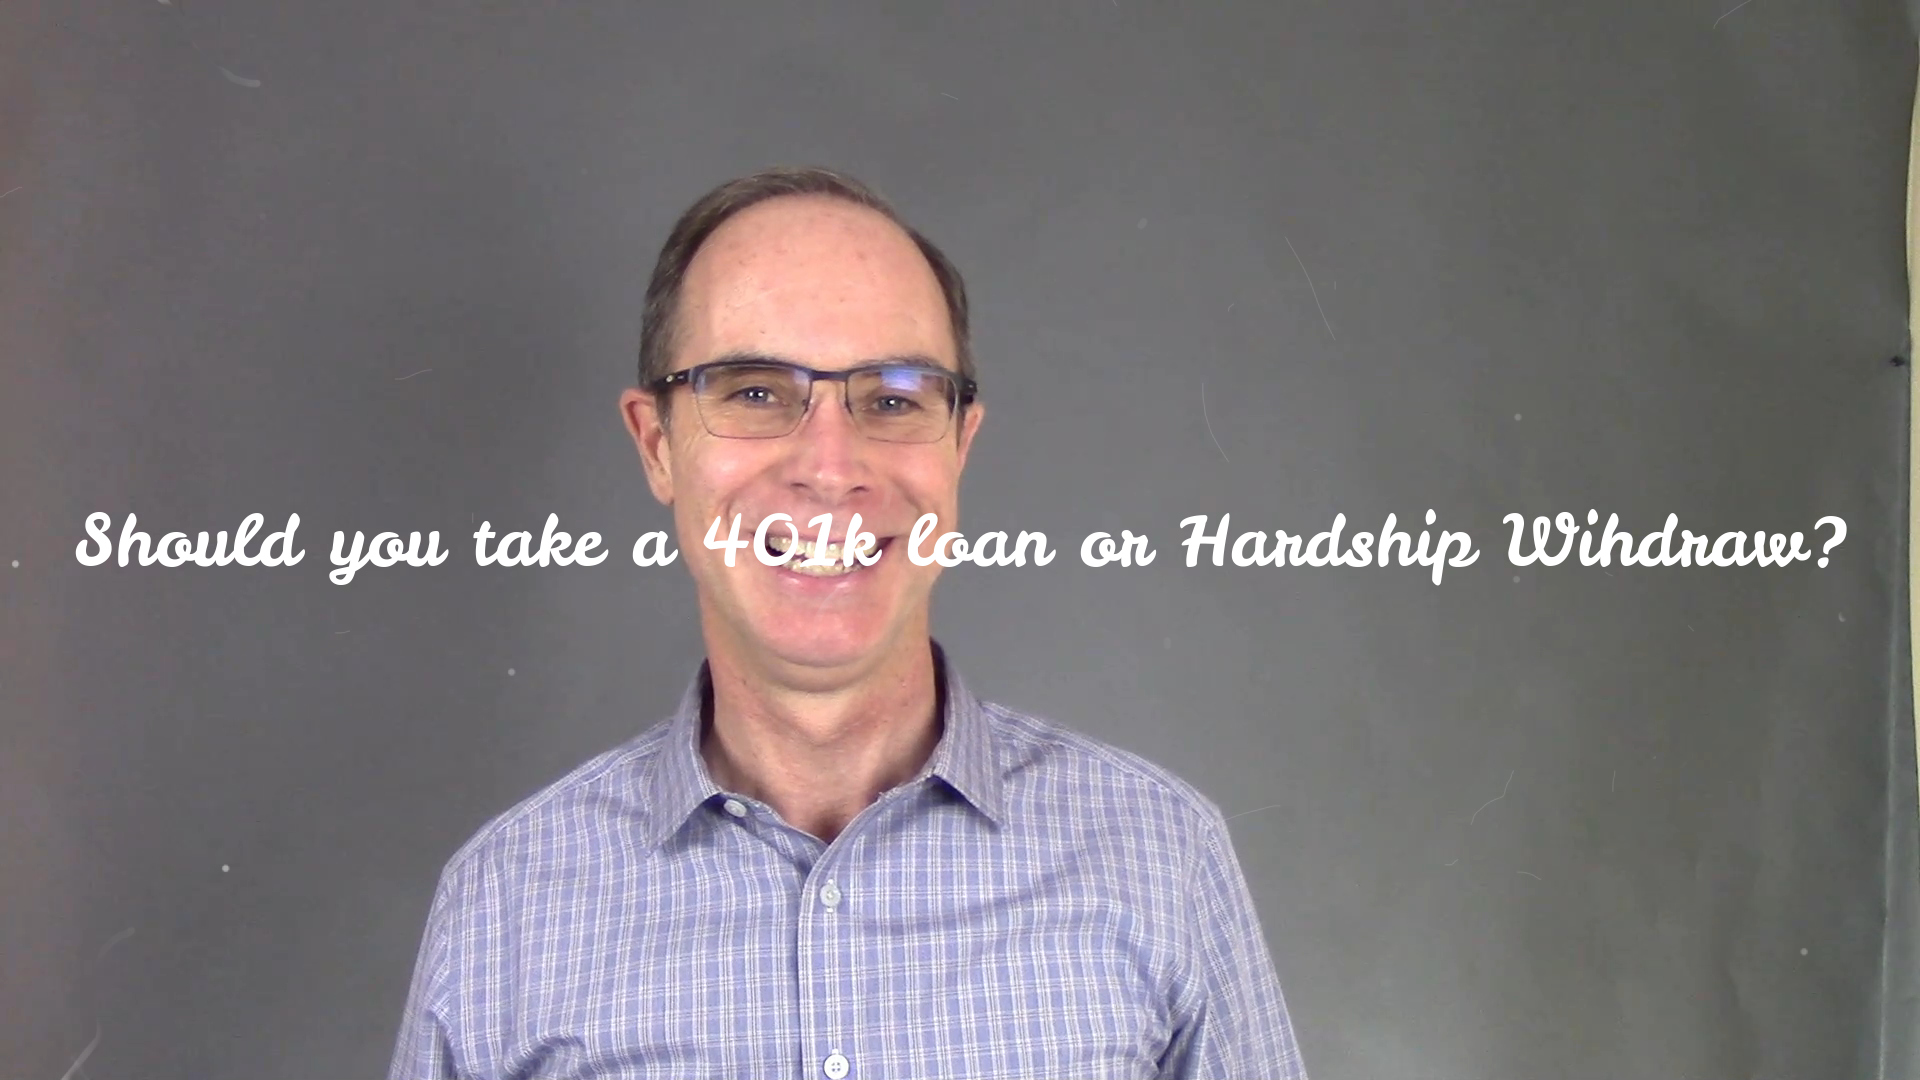 Video: Should you Take a Loan or Hardship Withdraw from your 401K? Thumbnail